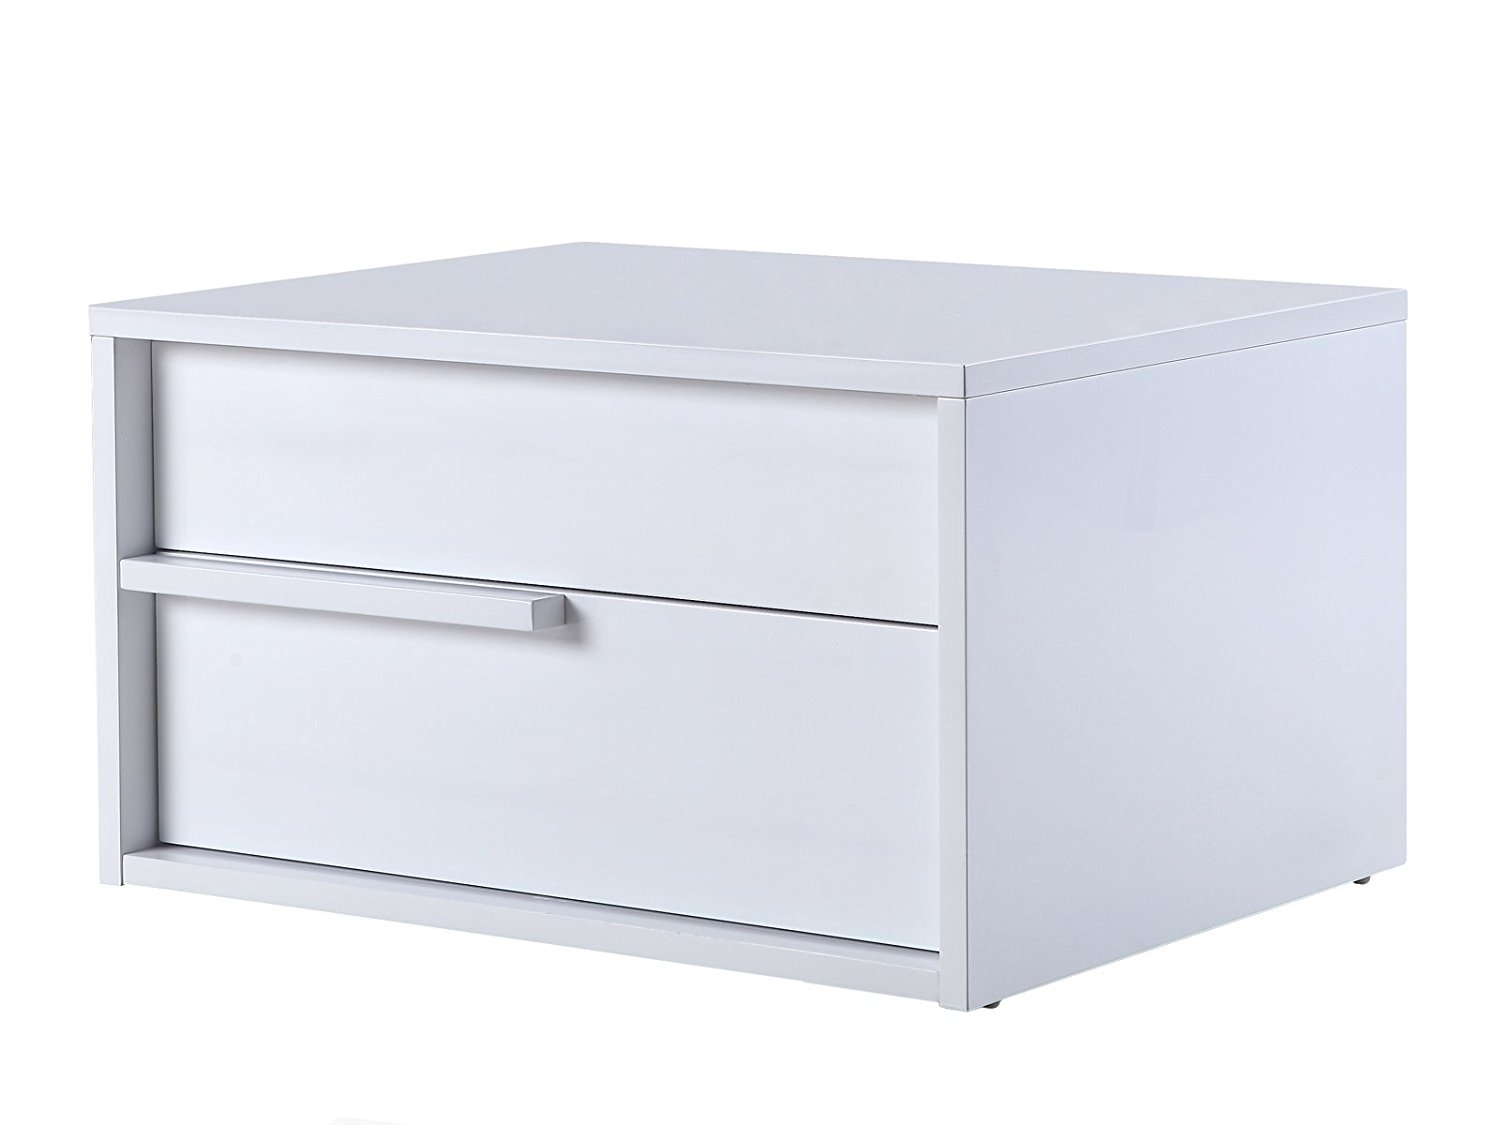 DOLCE High Gloss White Lacquer Left Side Nightstand / End Table by Casabianca Home TC-0210-L-N-WH - DOLCE High Gloss White Lacquer Left Side Nightstand / End Table by Casabianca Home